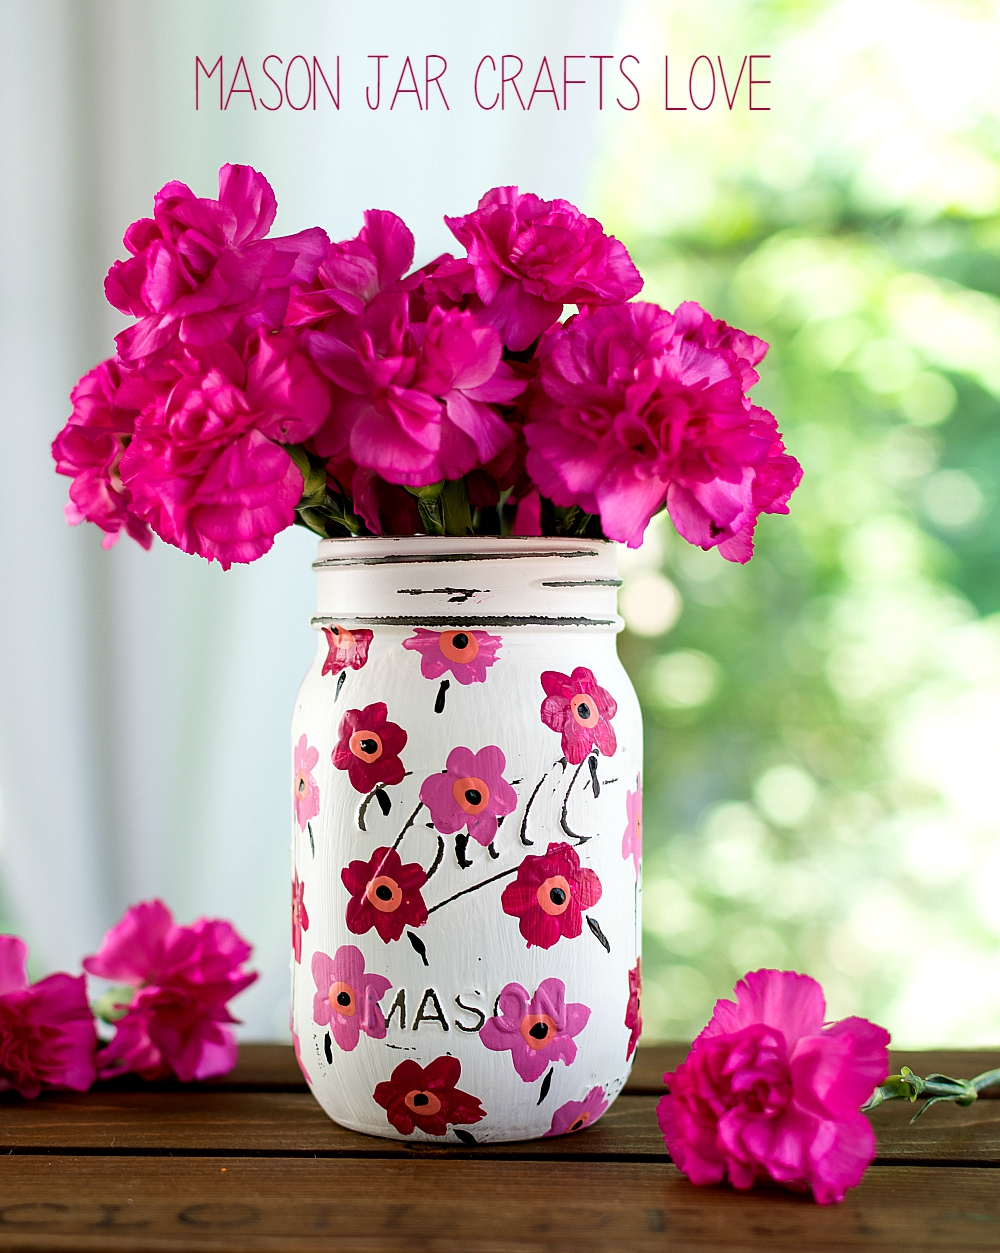 Mason Jar Crafts: Painted Floral Pink Marimekko Inspired Design